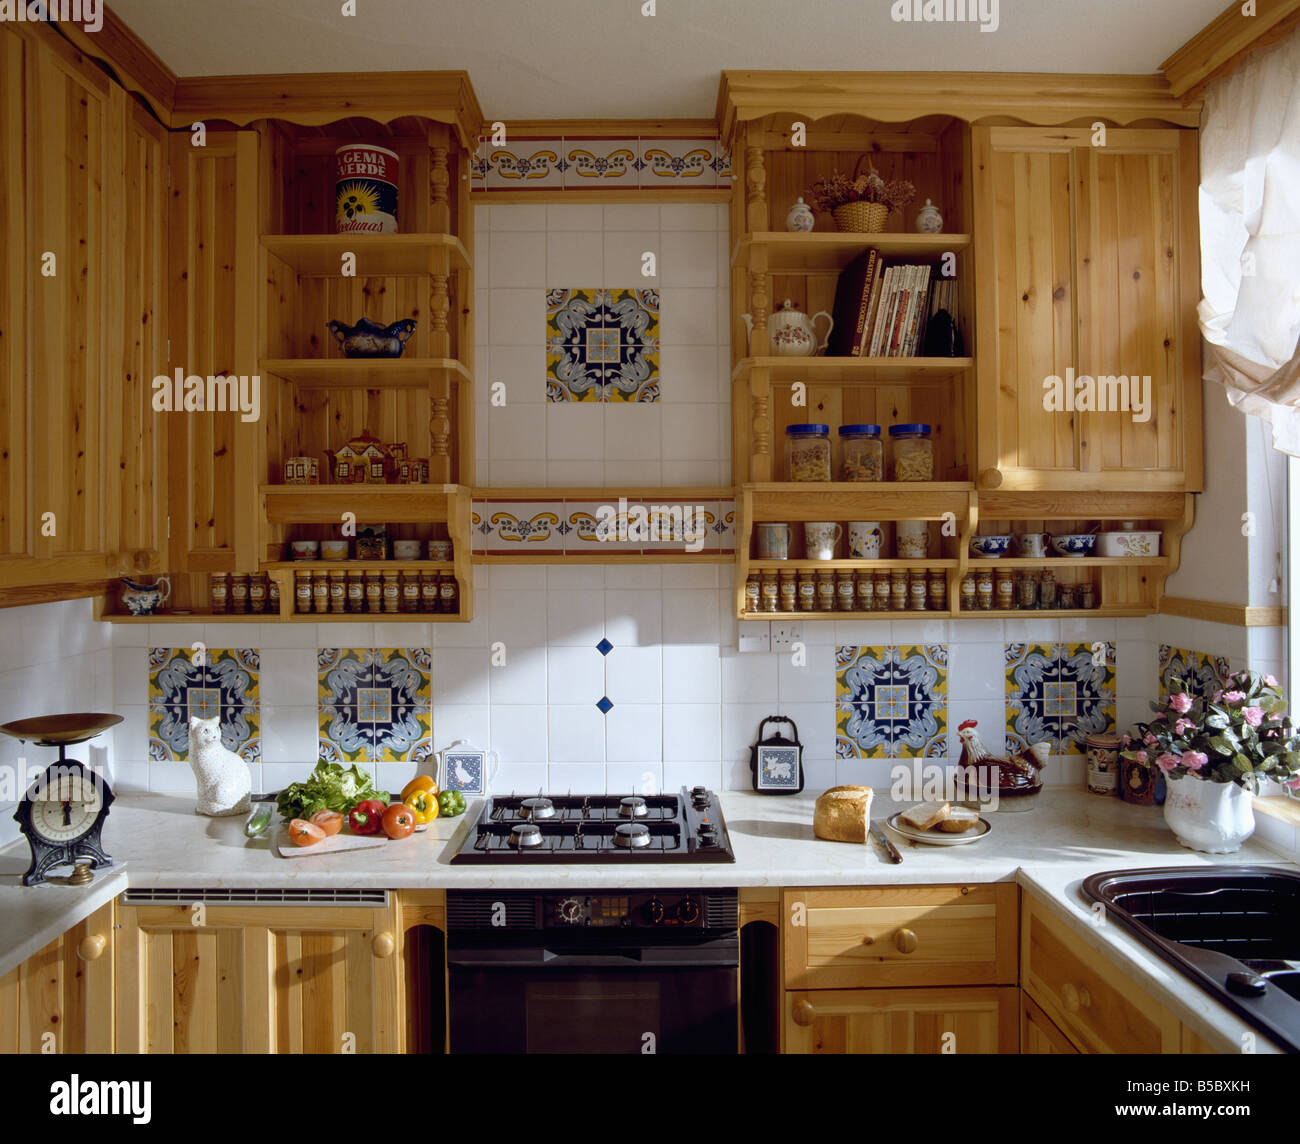 Superbe Pine Wall Units And White Tiled Wall With Decorative Spanish Tile Inserts  Above Worktop With Fitted Hob In Small Kitchen